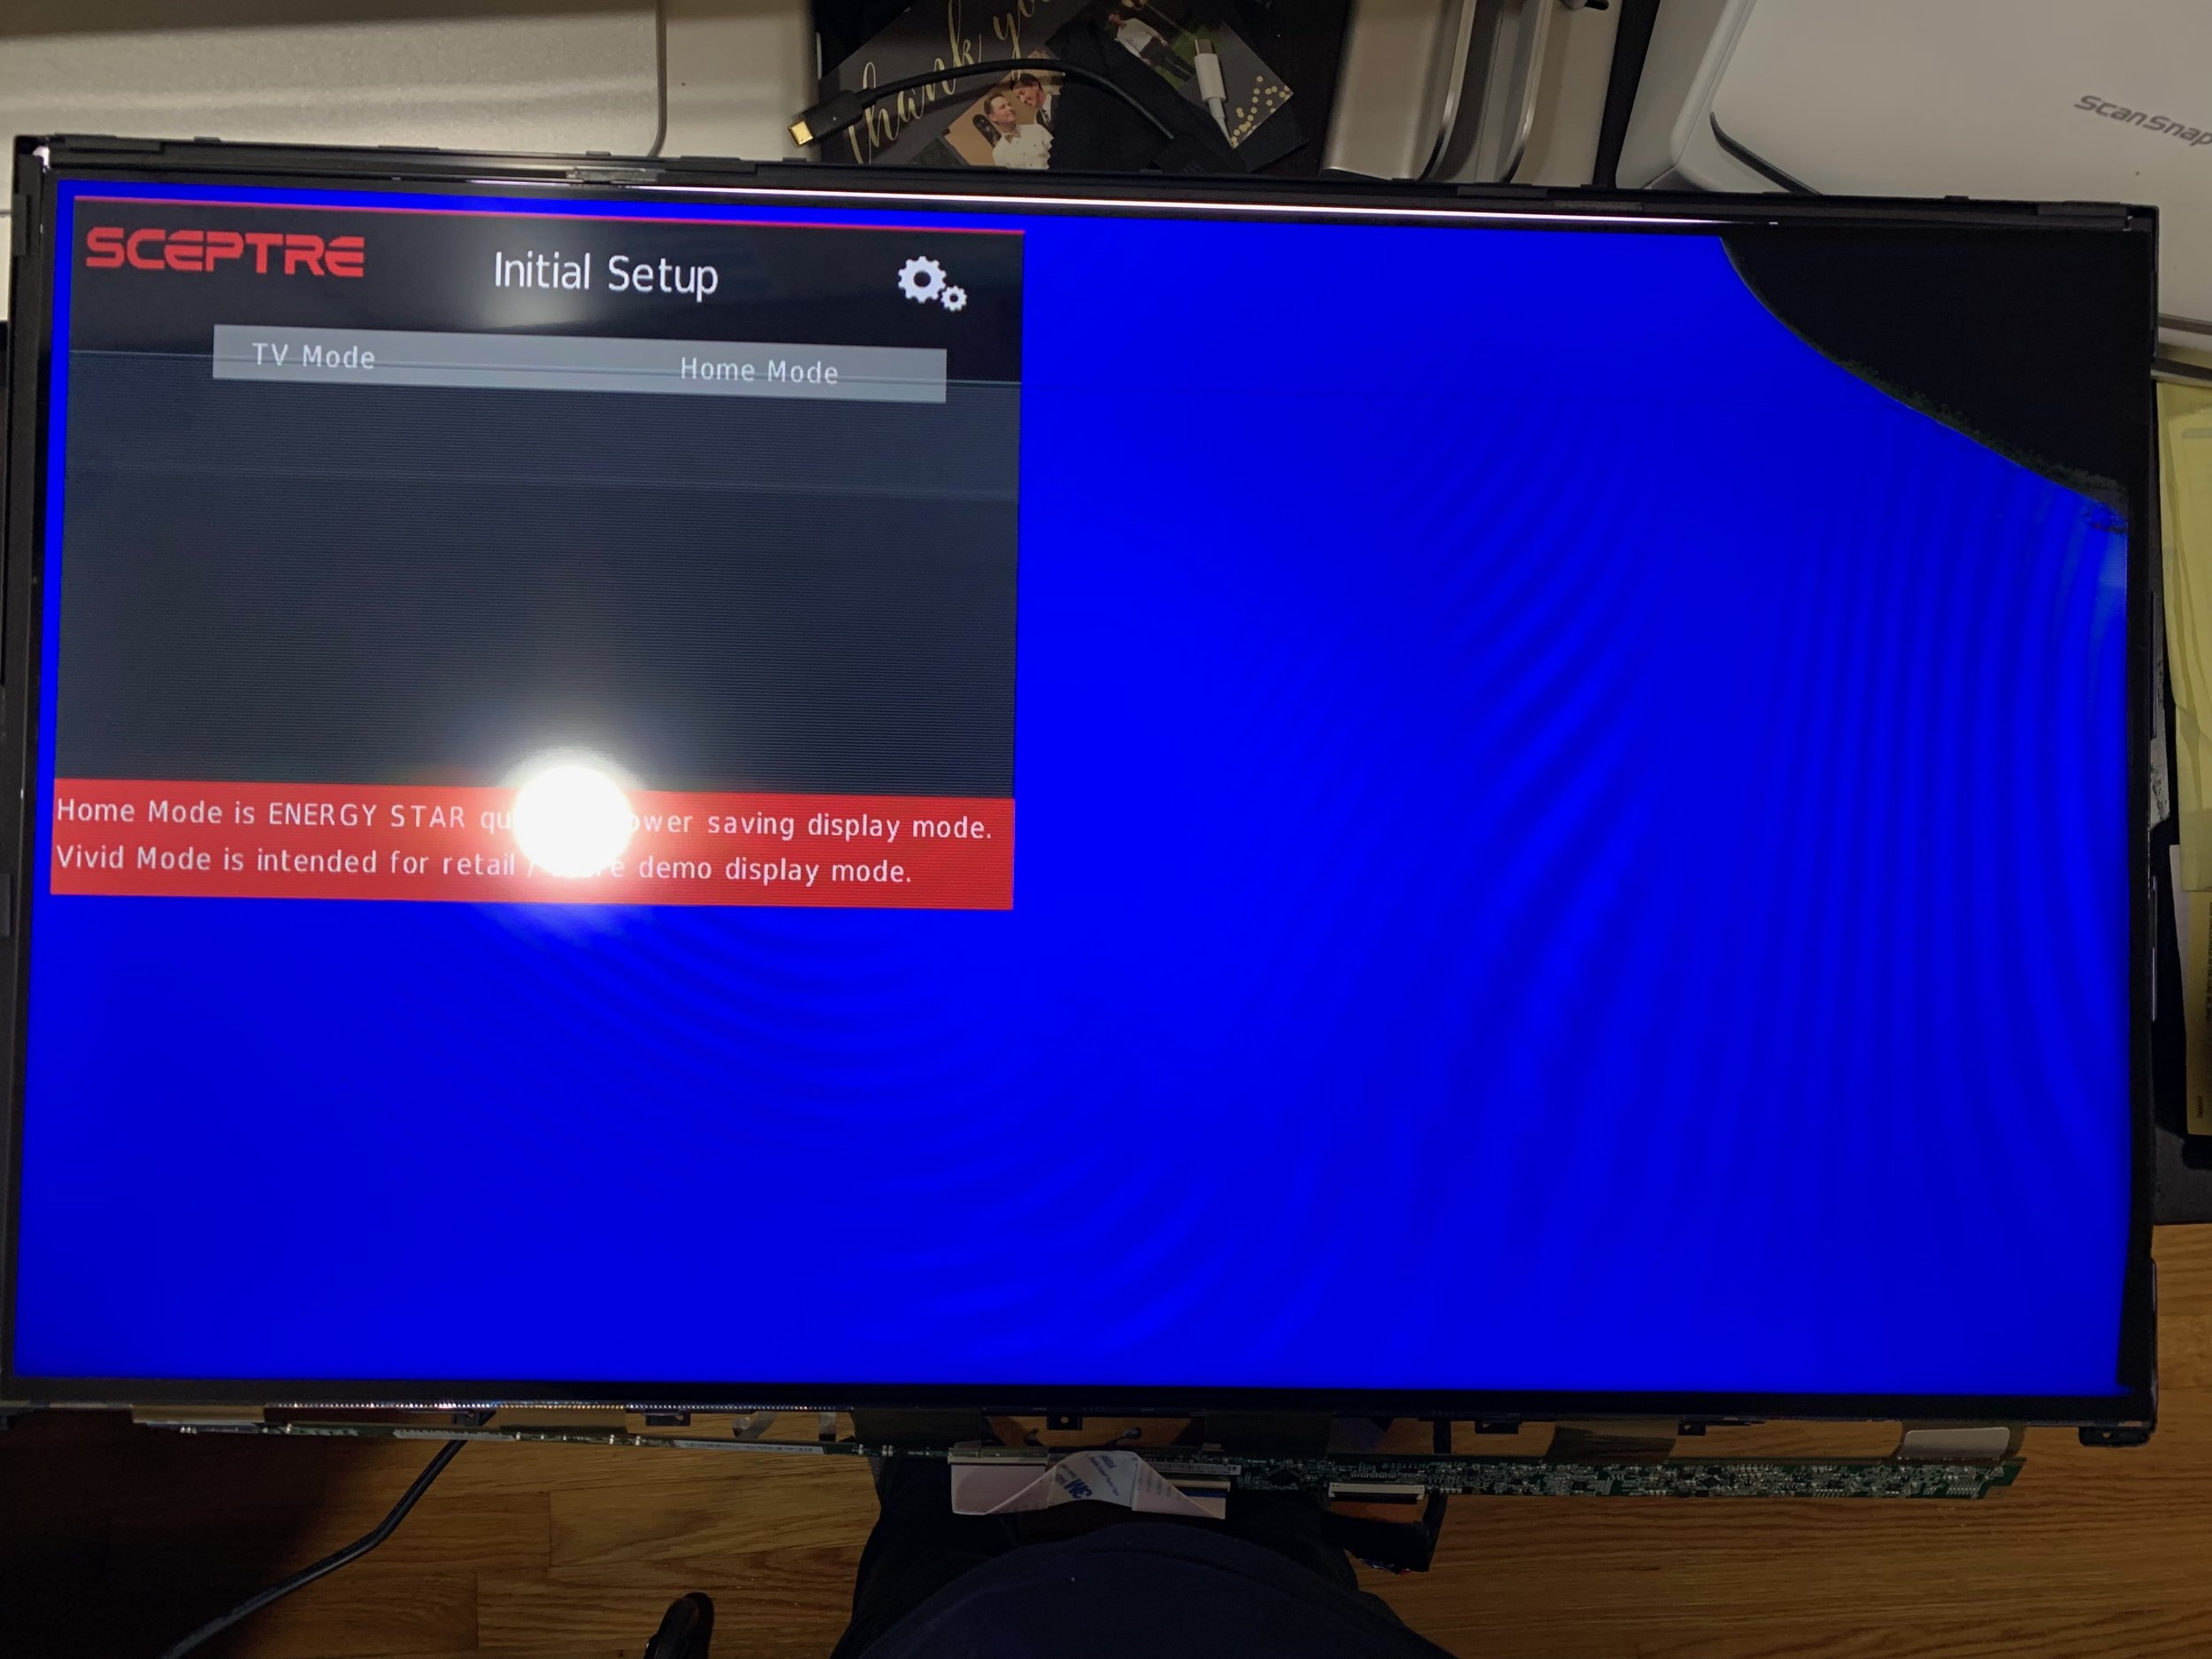 Why you should be careful disassembling a the HDTV.